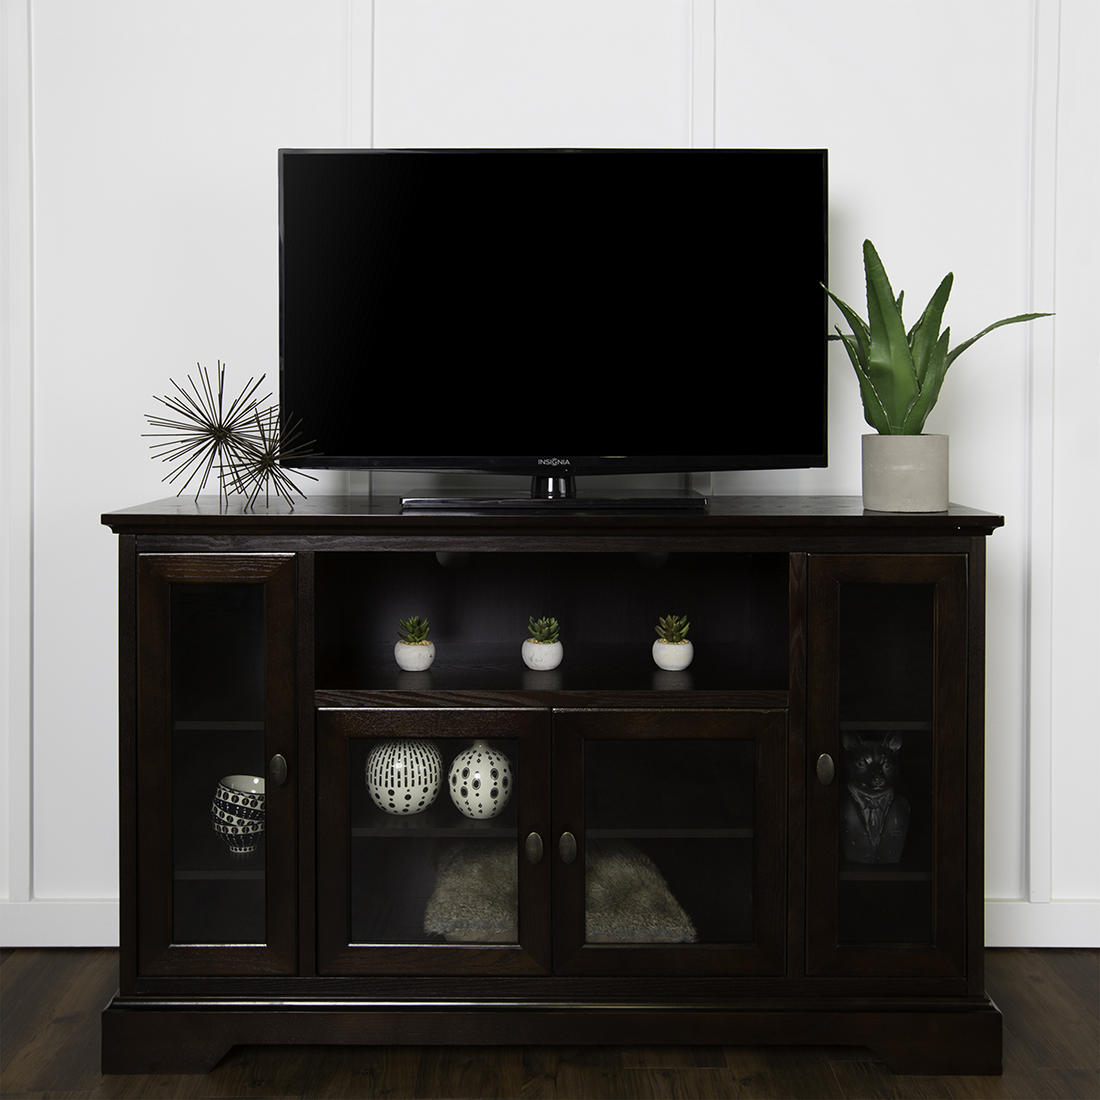 W Trends Highboy 52 Wood Tv Media Stand With Storage For Tvs Up To 55 Espresso